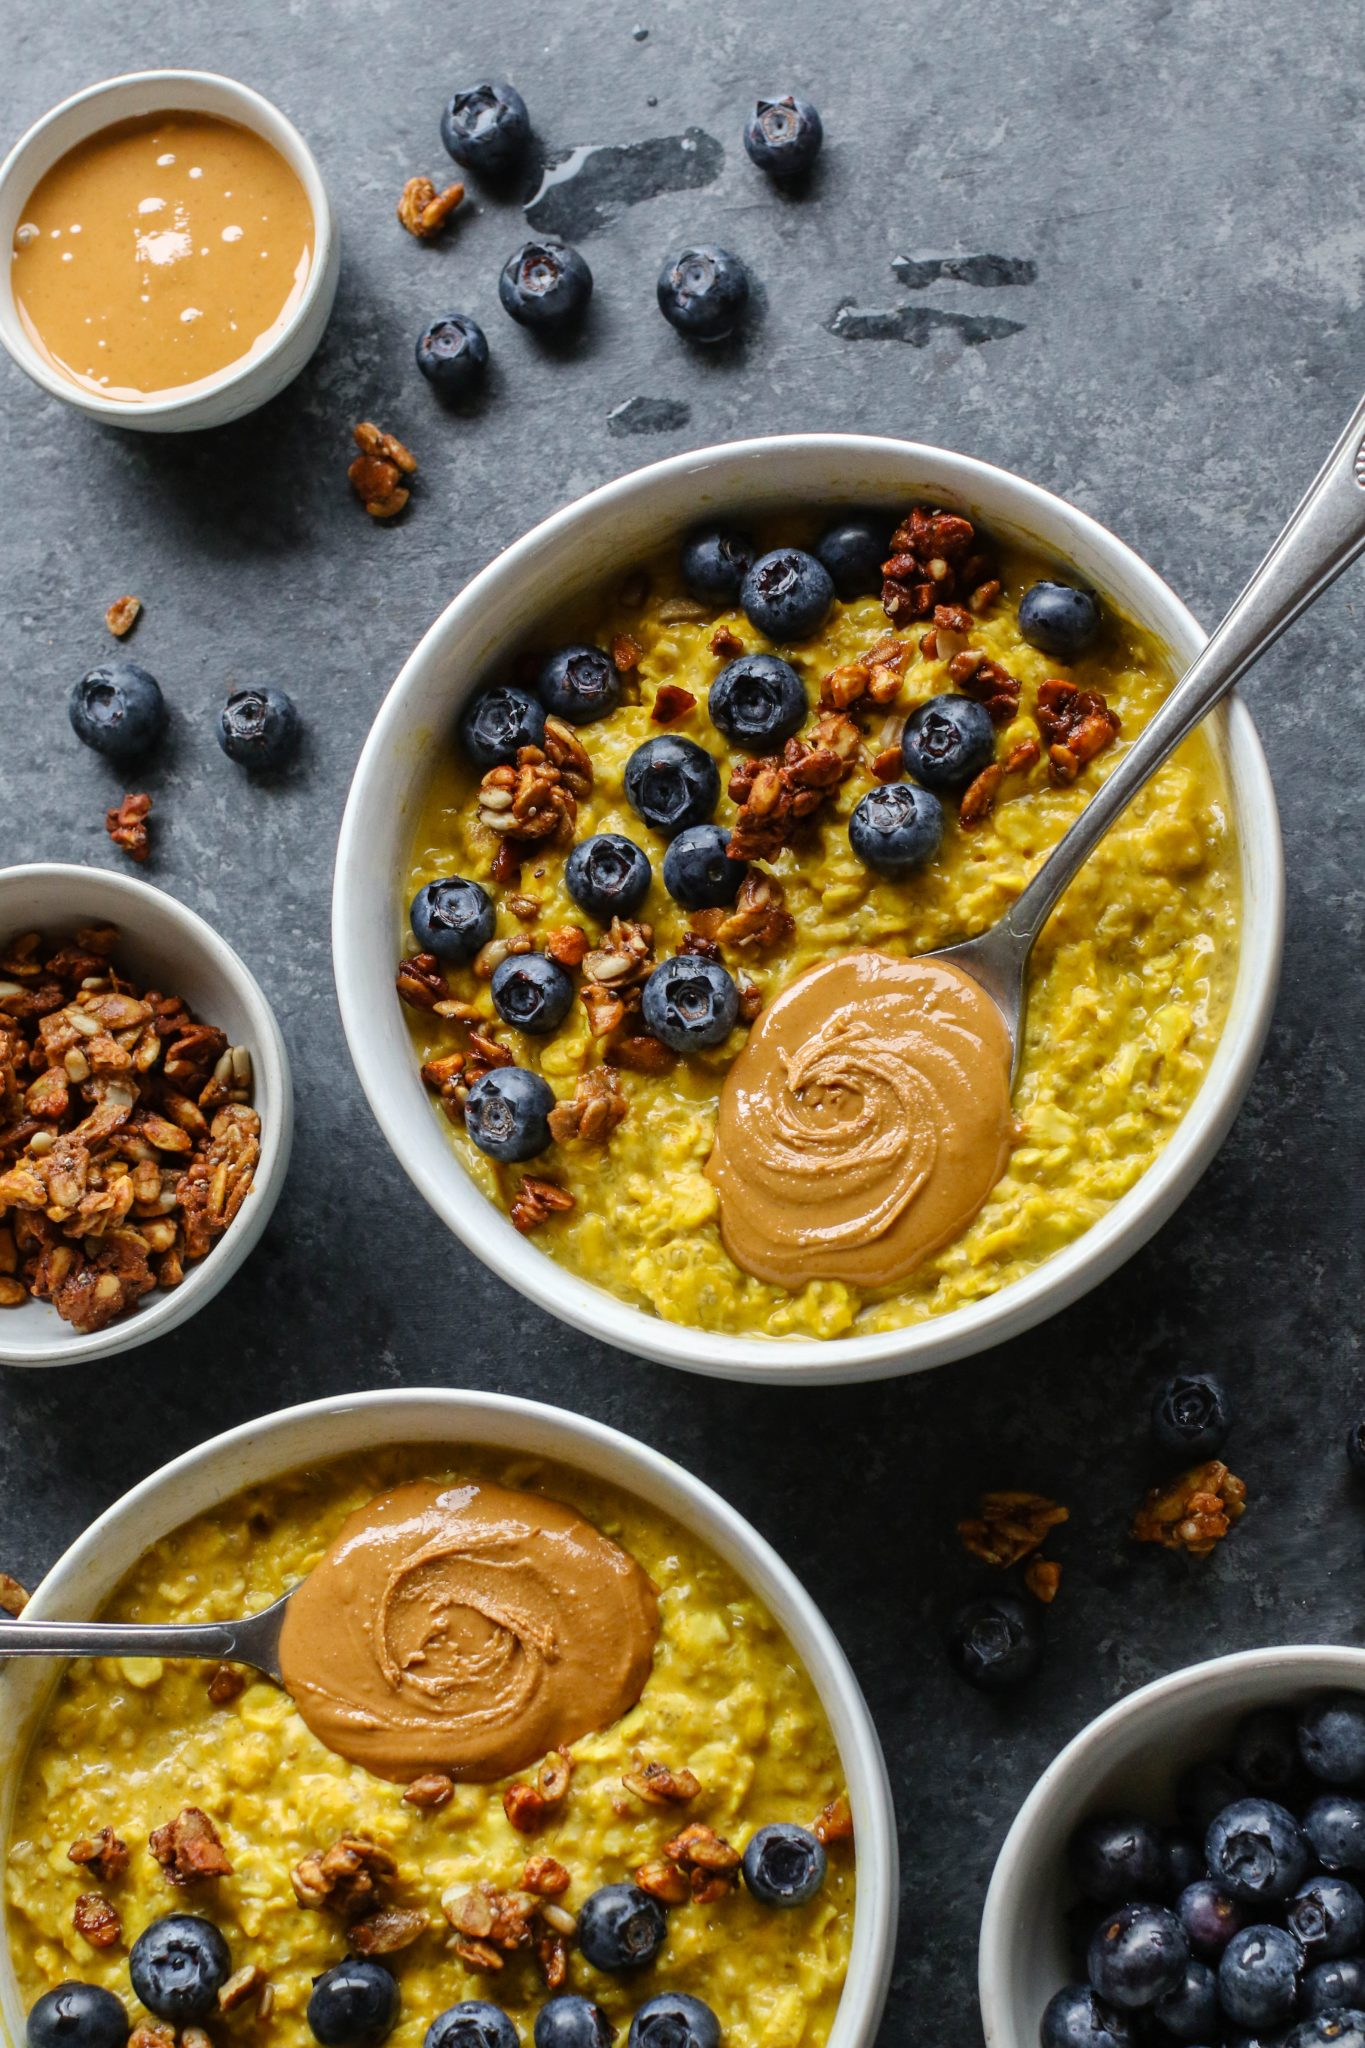 Golden Oats with Blueberries & Cashew Butter by Flora & Vino